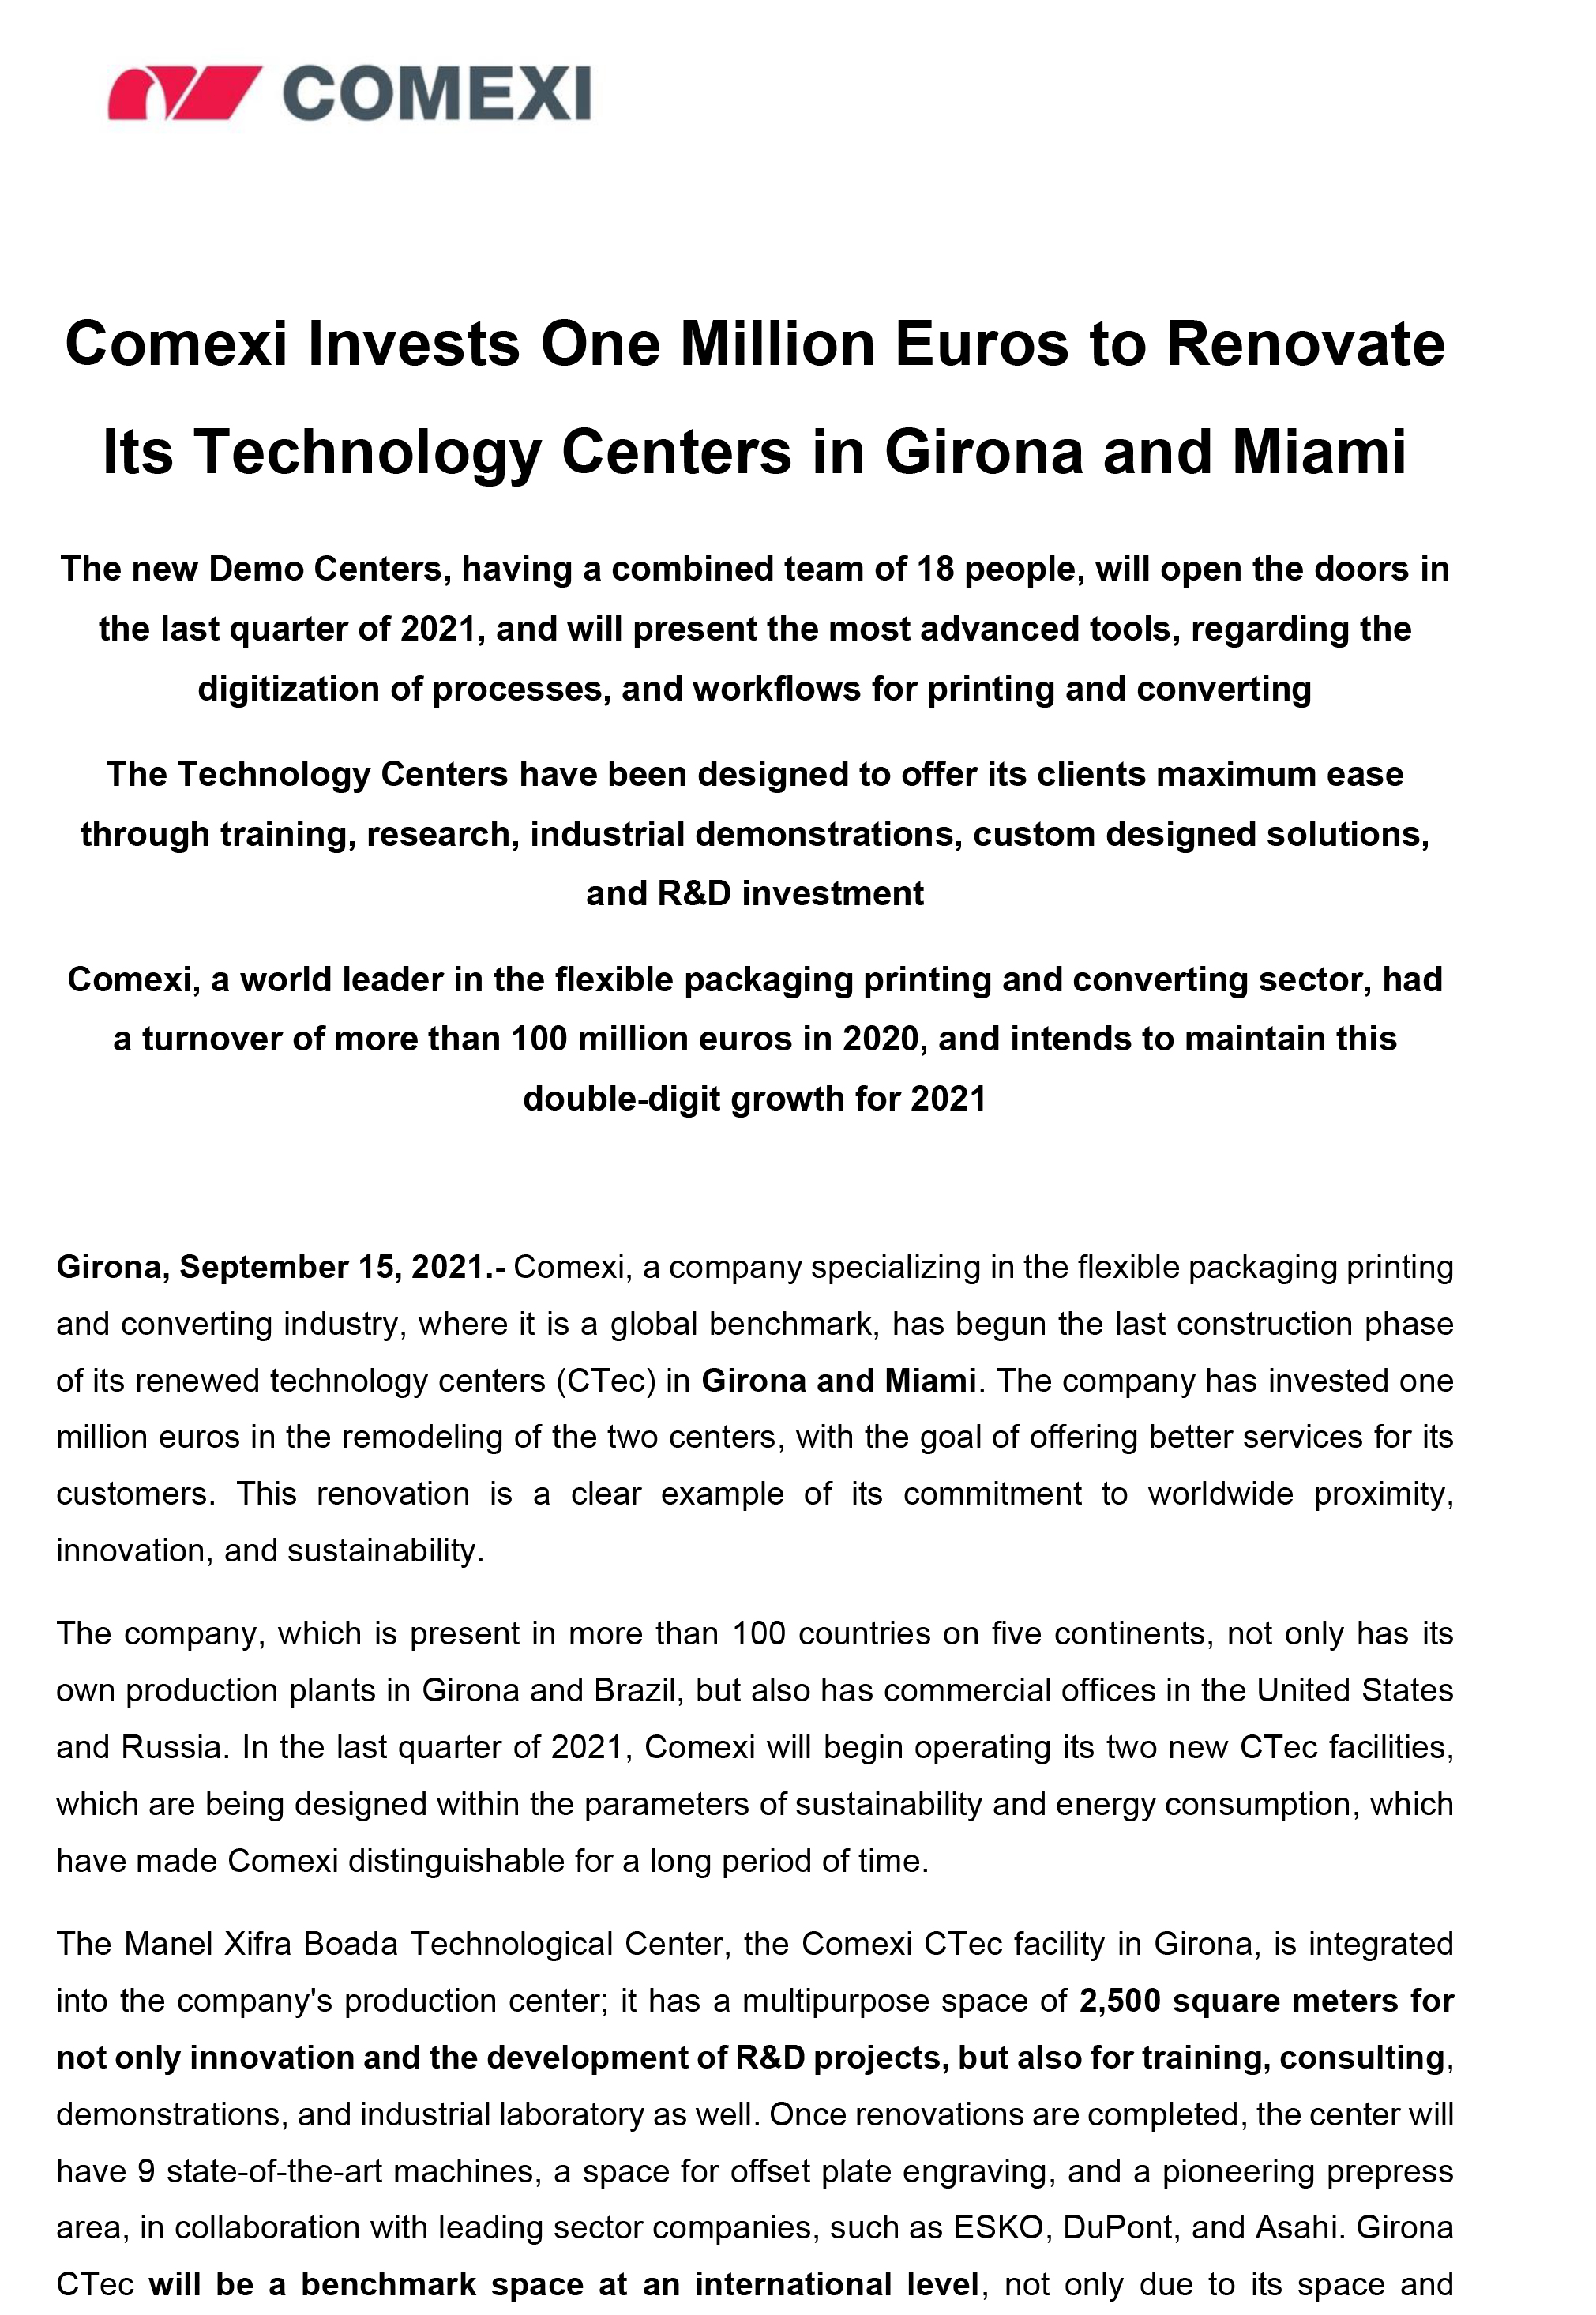 PR - Comexi Invests One Million Euros to Renovate Its Technology Centers in Girona and Miami